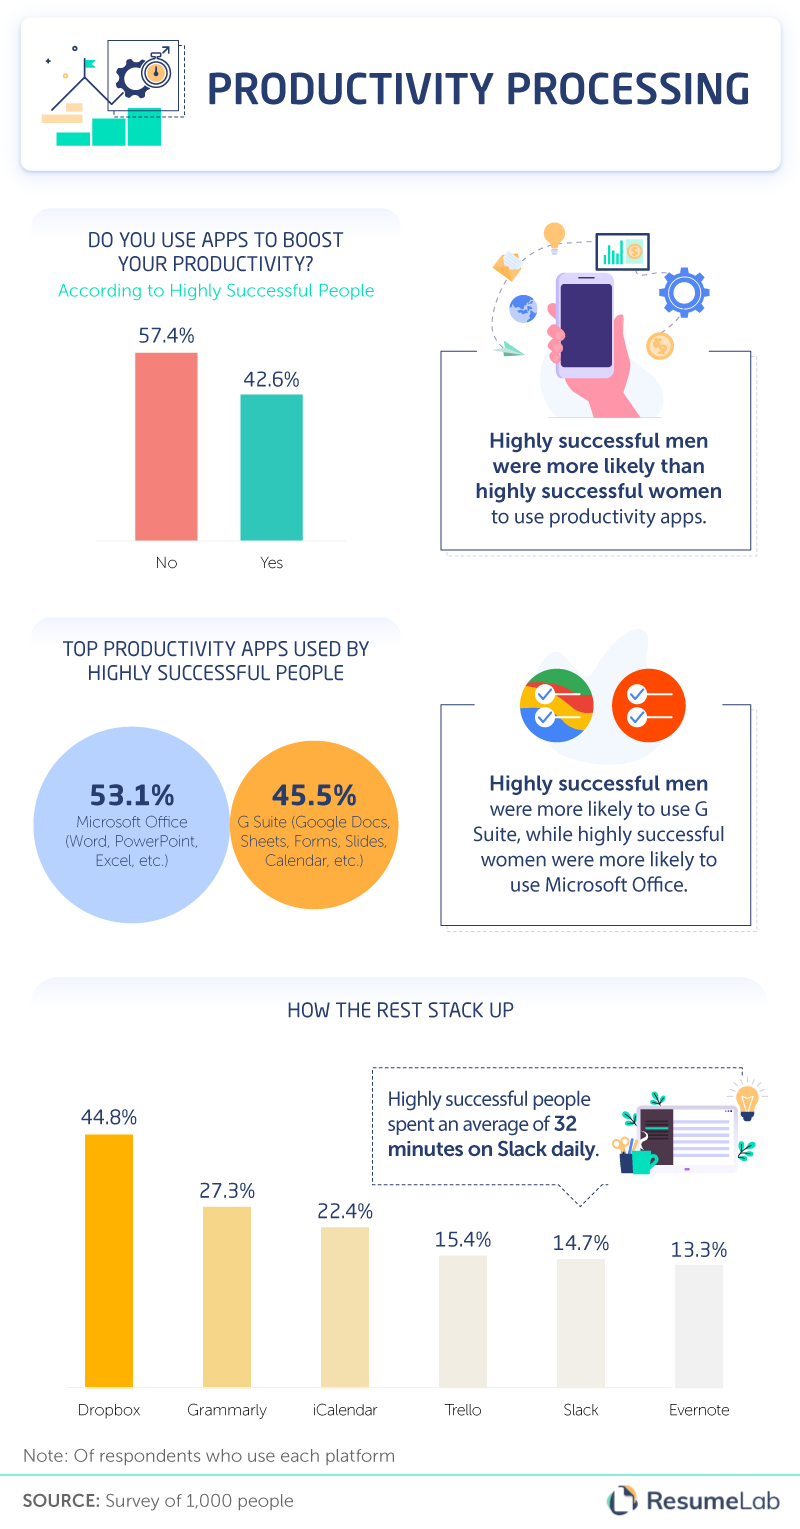 productivity_apps_used_by_highly_successful_people